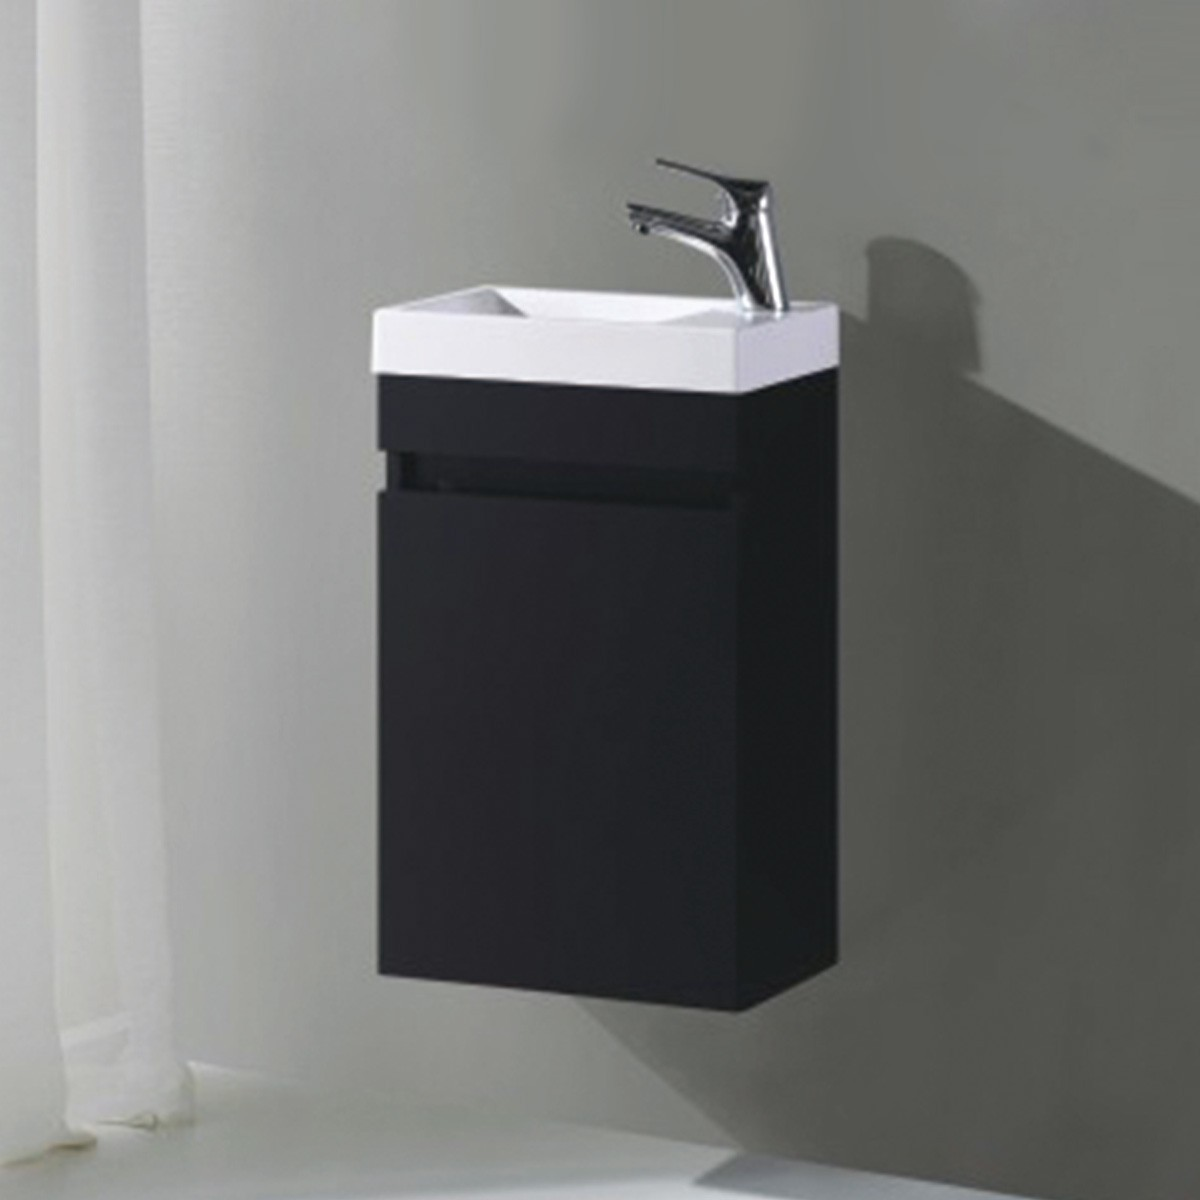 16 In. Wall Mount Vanity with Basin (MS400B-V)